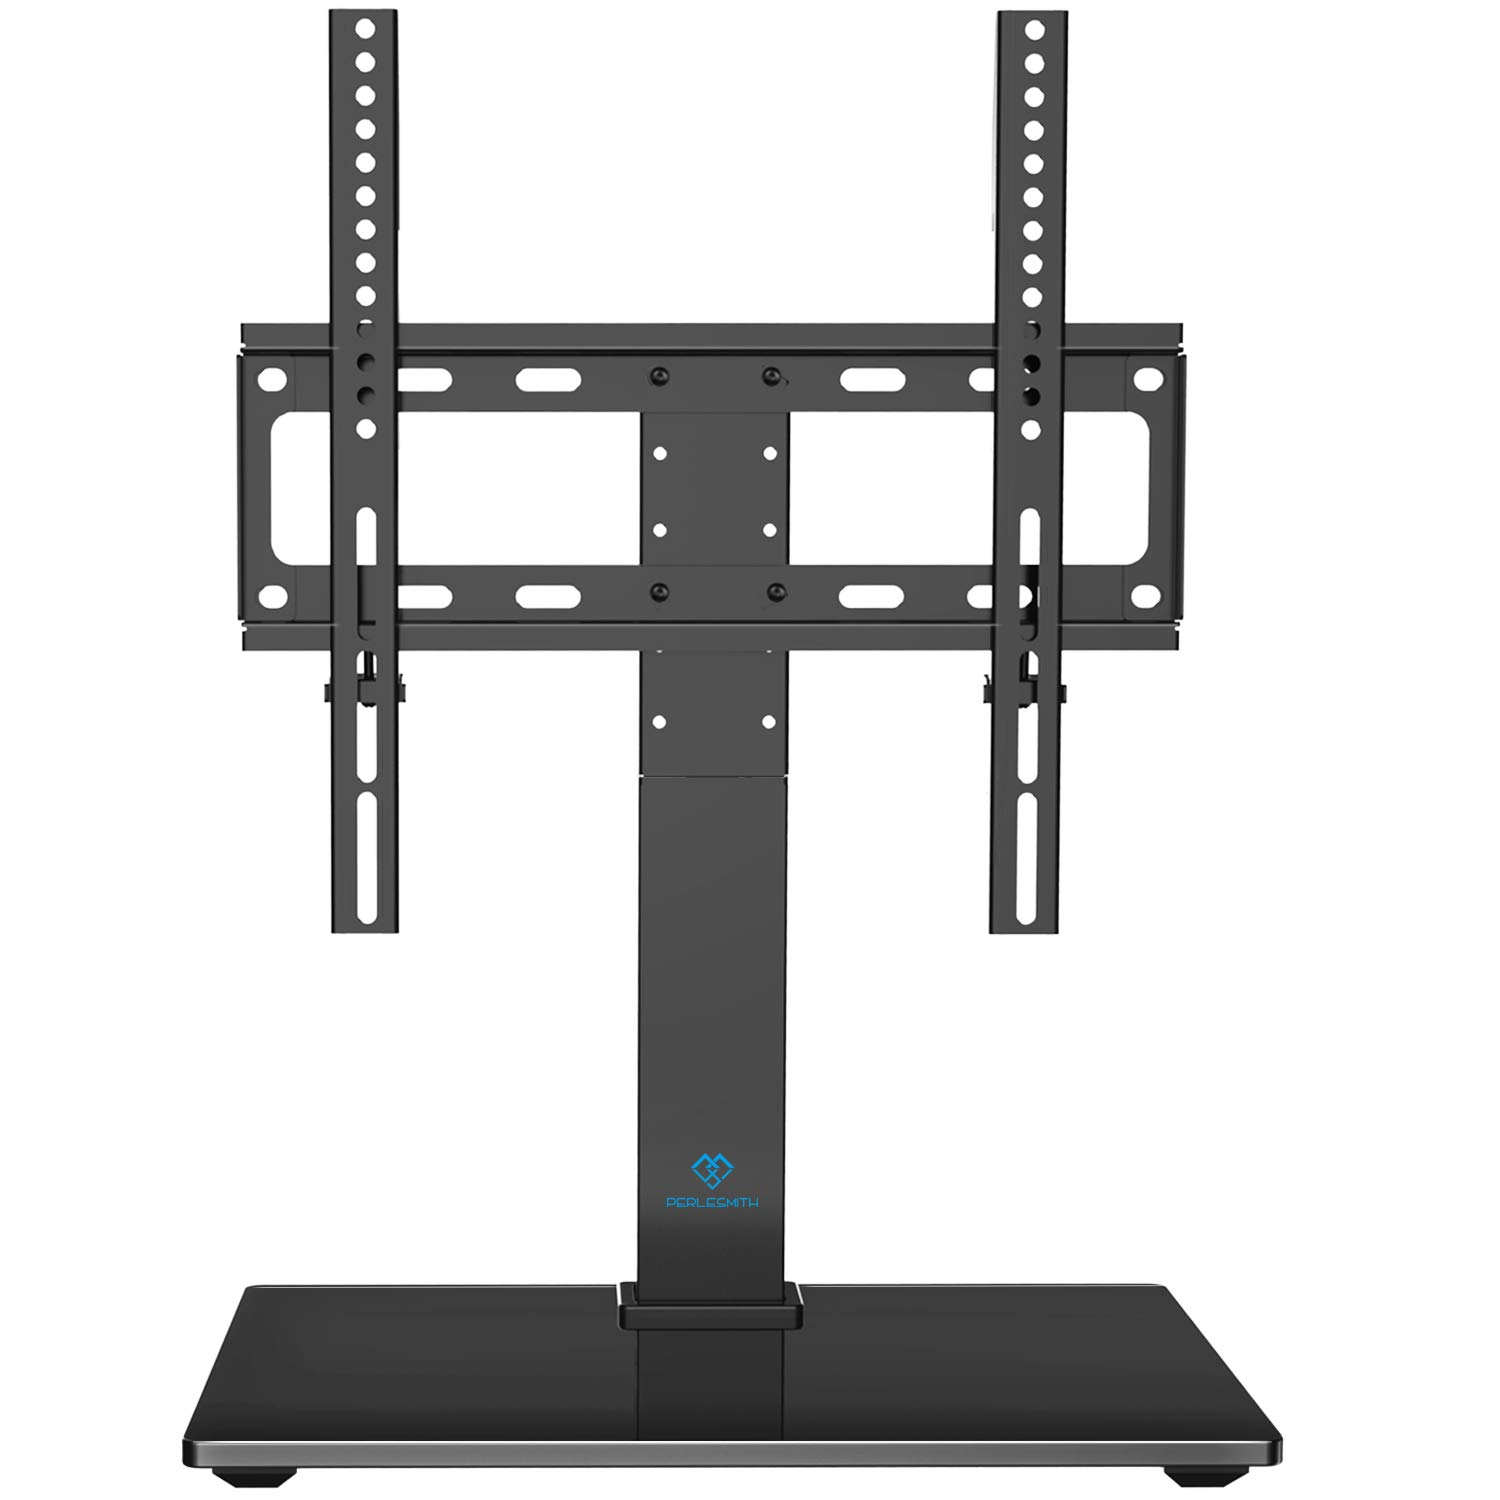 PERLESMITH Universal Swivel TV Stand - Table Top TV Stand for 26-55 Inch LCD LED TVs - Height Adjustable TV Mount Stand with Tempered Glass Base, VESA 400x400mm, Holds Up to 88lbs by PERLESMITH